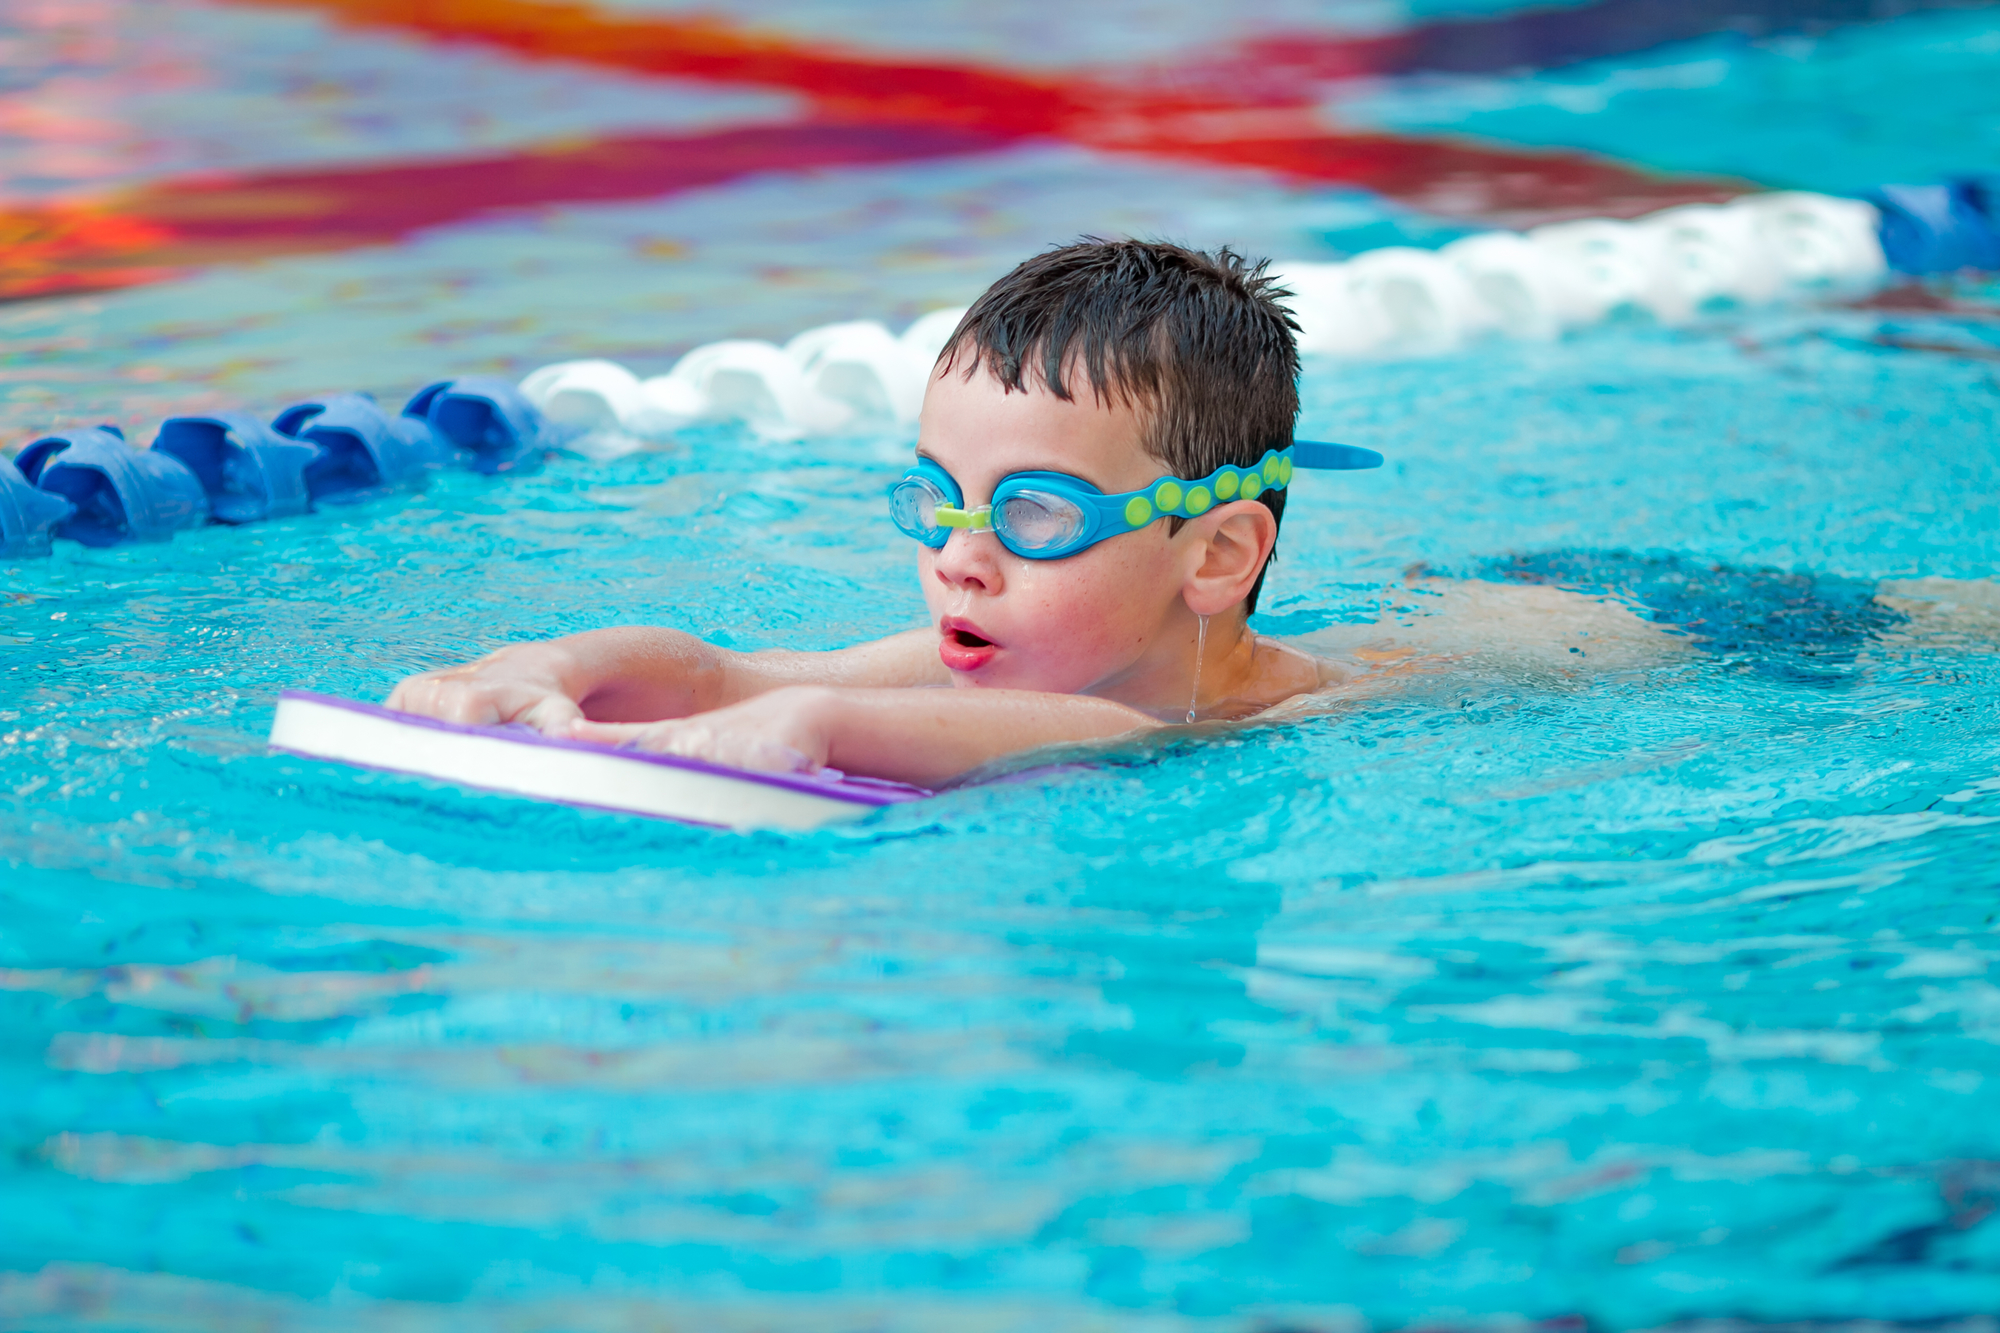 Inspired - Our swim school was created to provide high quality swimming lessons. We choose quality over quantity and treat each student as an indivdual. All progress is tracked online so we can work on anything your child may be struggling with. All our instructors are trained in house so they are extremely knowledgeable.